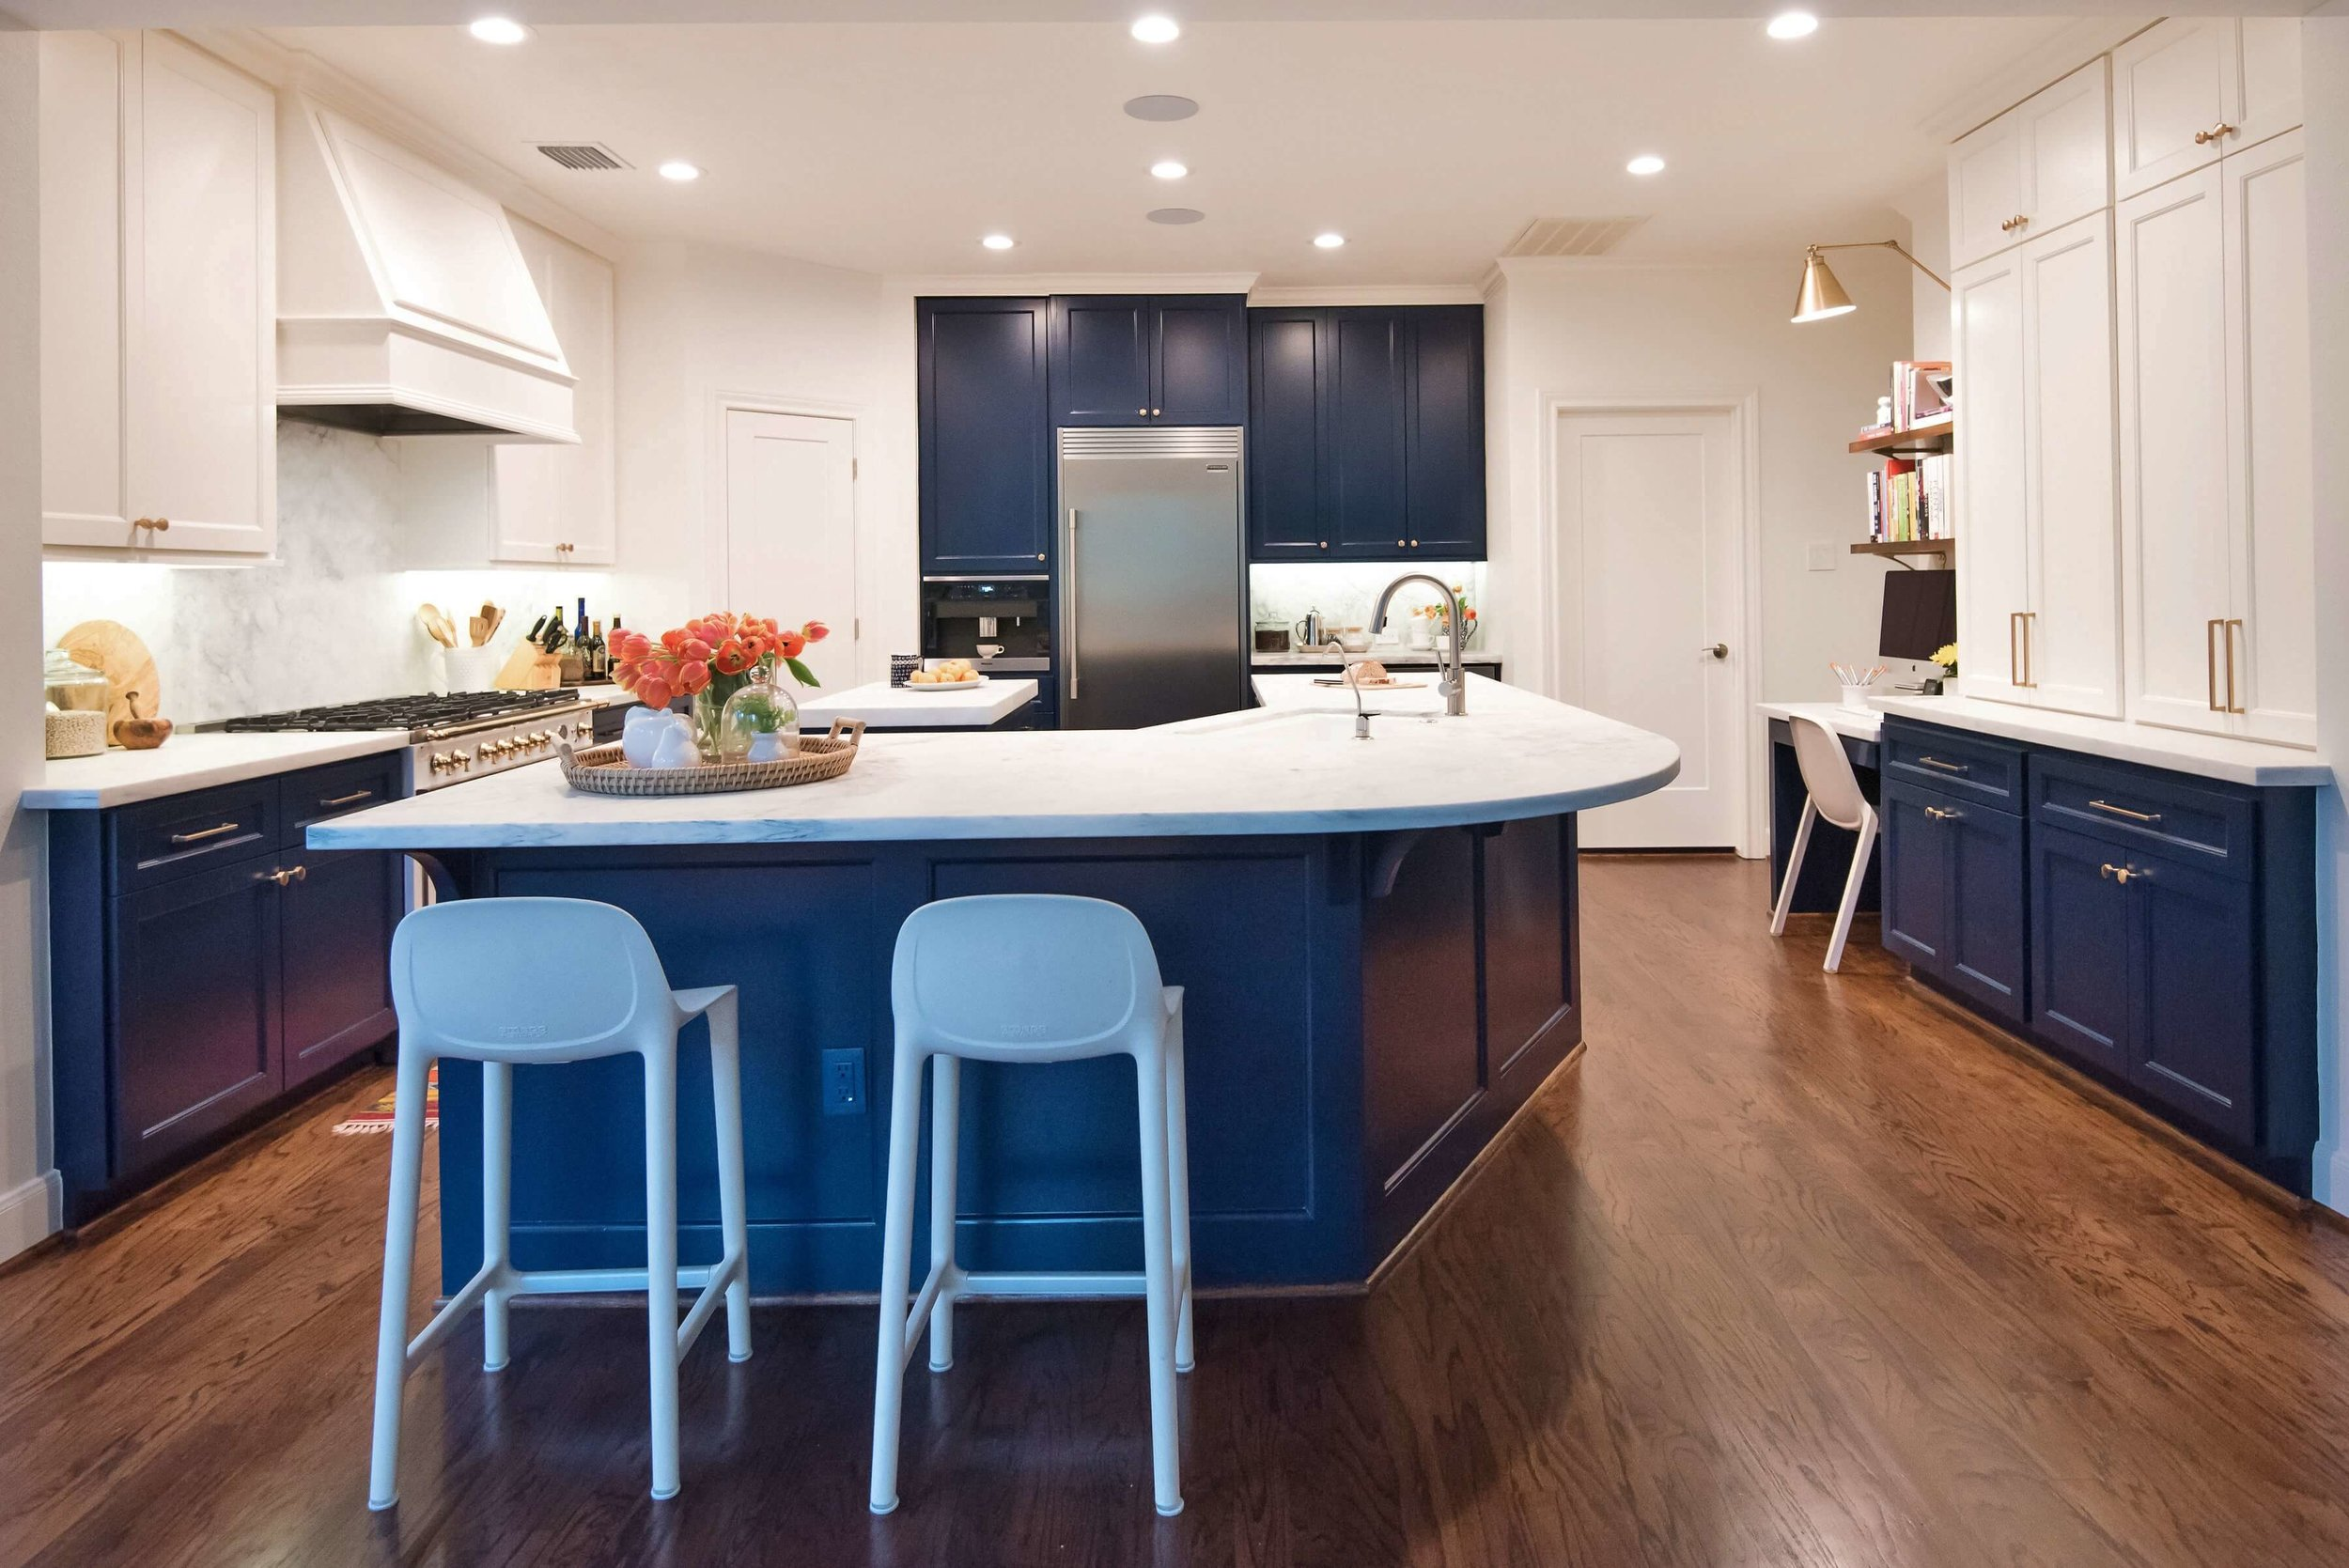 AFTER - We removed the column with this remodel, adding a beam across the wide kitchen opening and then lowered to bar to counter height. The bar face was paneled and painted to match the blue kitchen cabinets. These changes really help the bar feel more like part of the kitchen and appear larger and more open. | Carla Aston, Designer | Lauren Giles, Photographer #bluekitchen #kitchendesign #kitchenbar